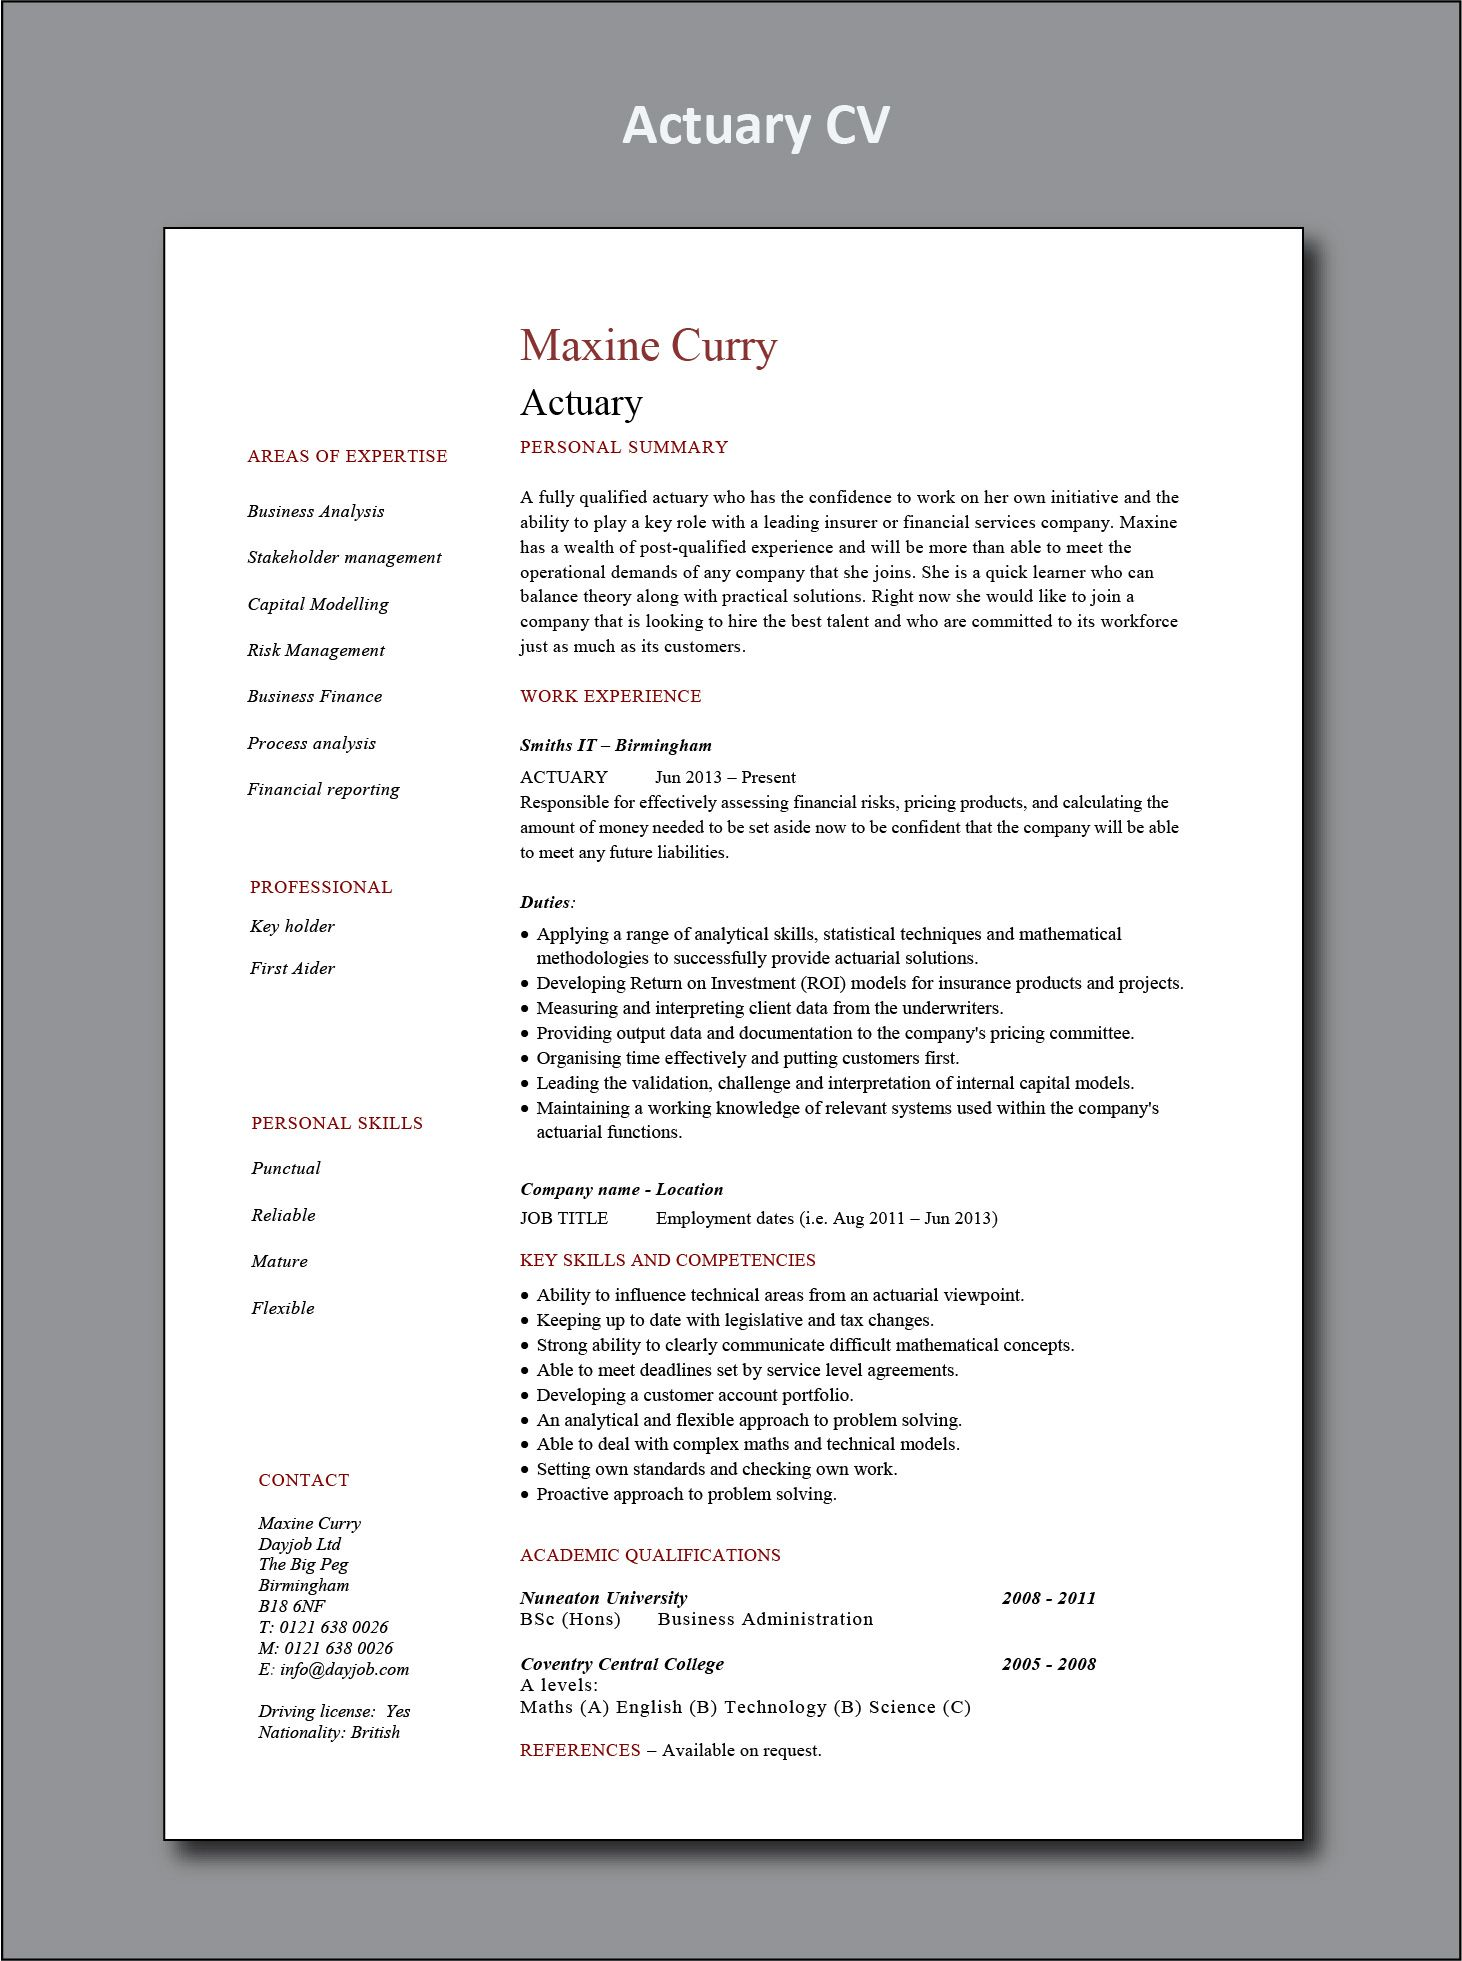 Actuary Cv Example In 2020 Project Manager Resume Office